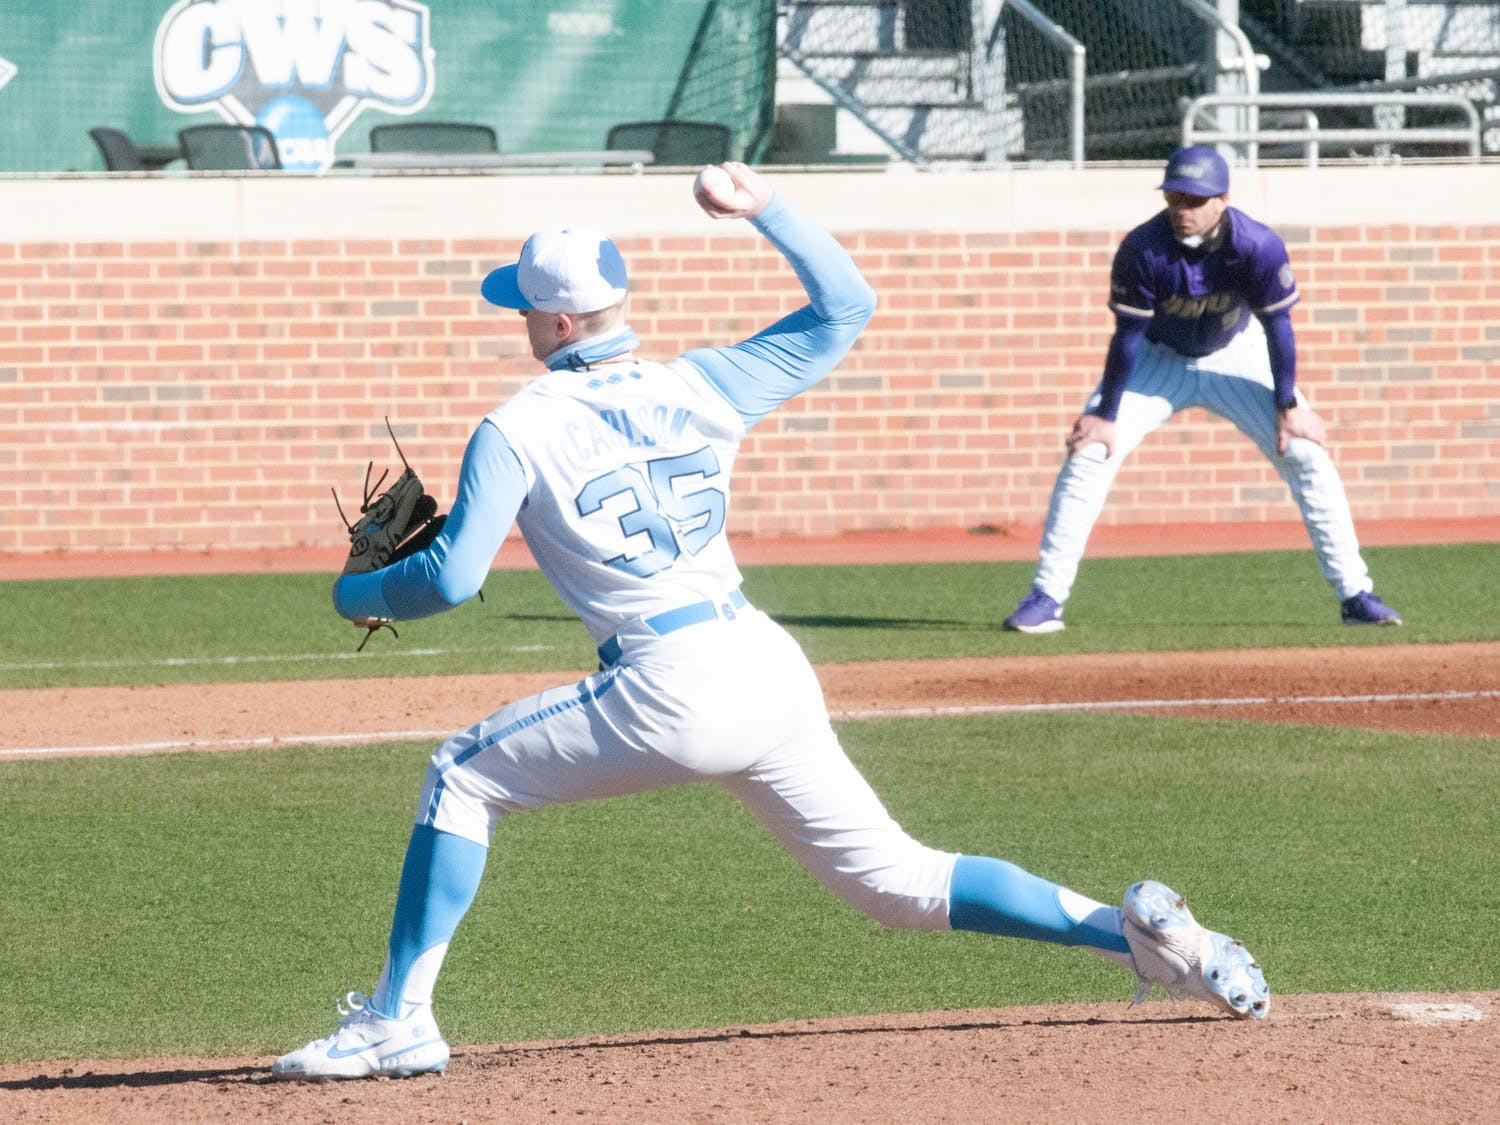 UNC first-year pitcher Max Carlson (35) delivers a pitch during UNC's 7-4 win over James Madison at Boshamer Stadium, Feb. 20, 2021.